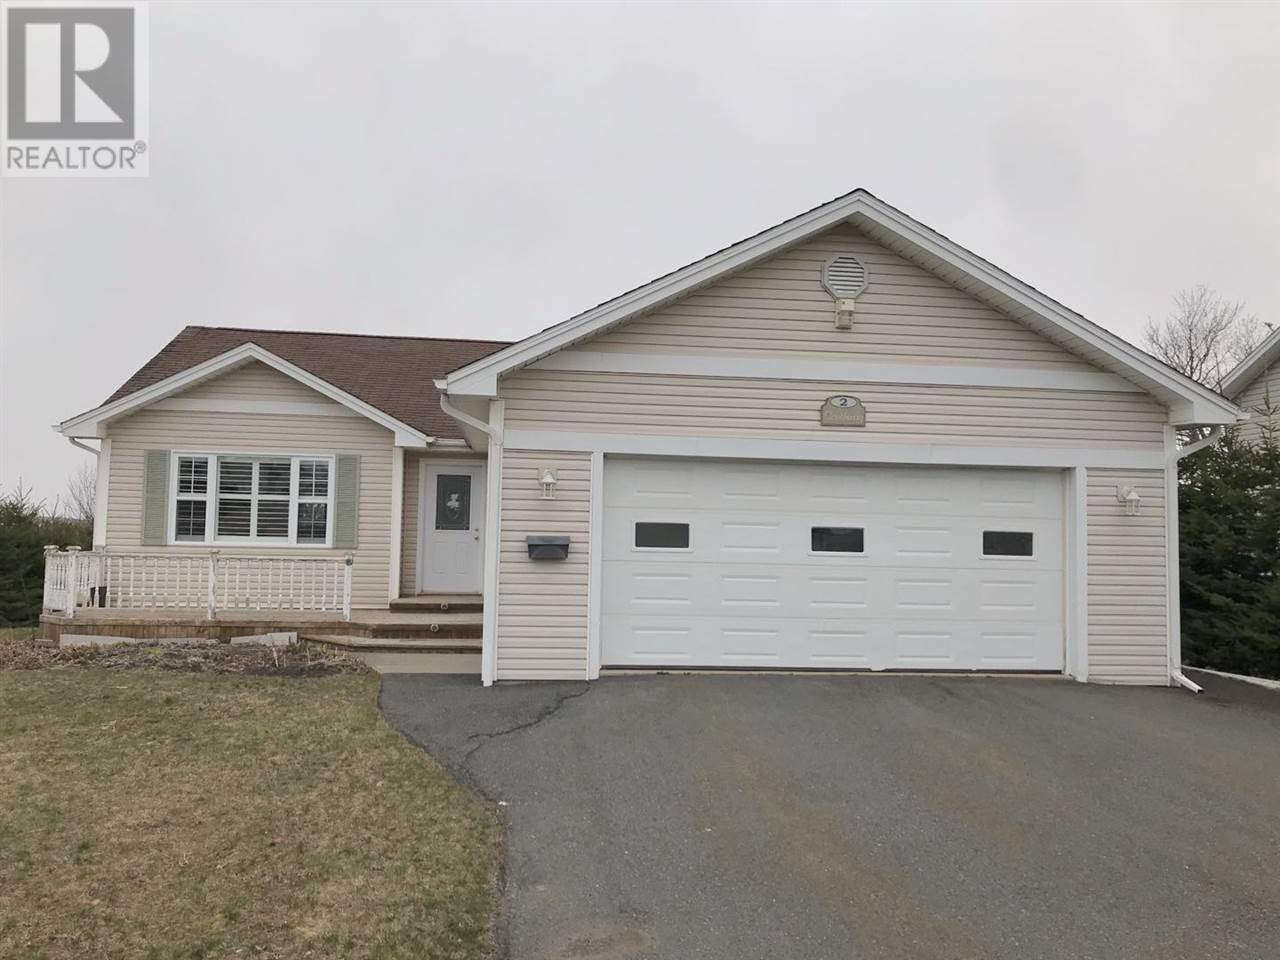 House for sale at 2 Southway Cres Charlottetown Prince Edward Island - MLS: 202004011